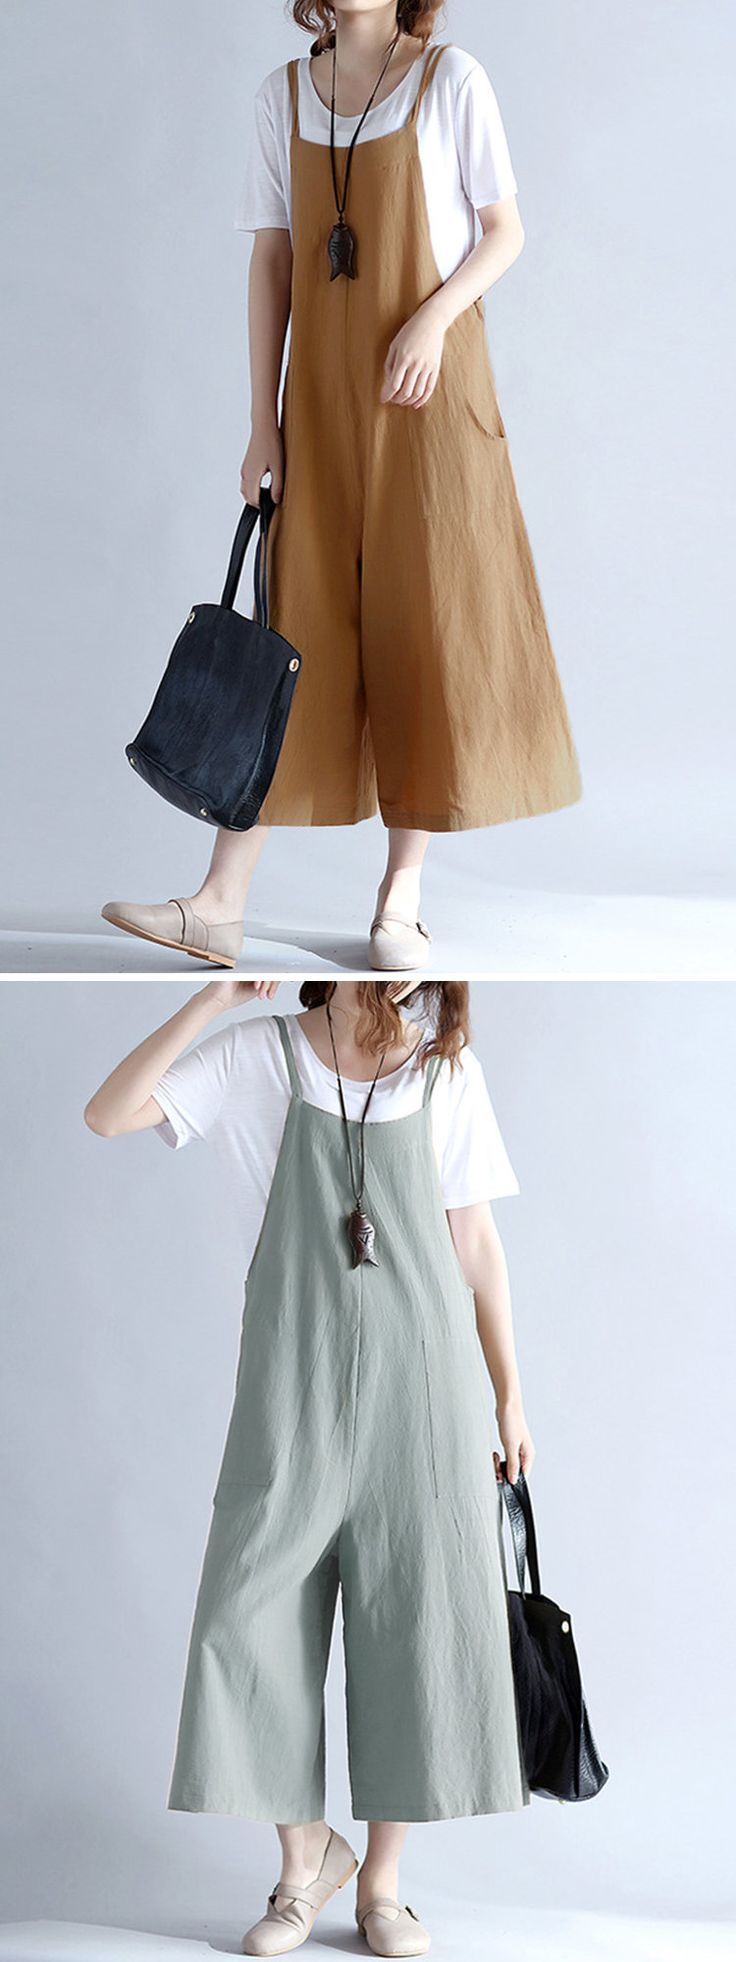 US$ 21.86 O-NEWE Casual Women Loose Solid Strap Pocket Overall Jumpsuits